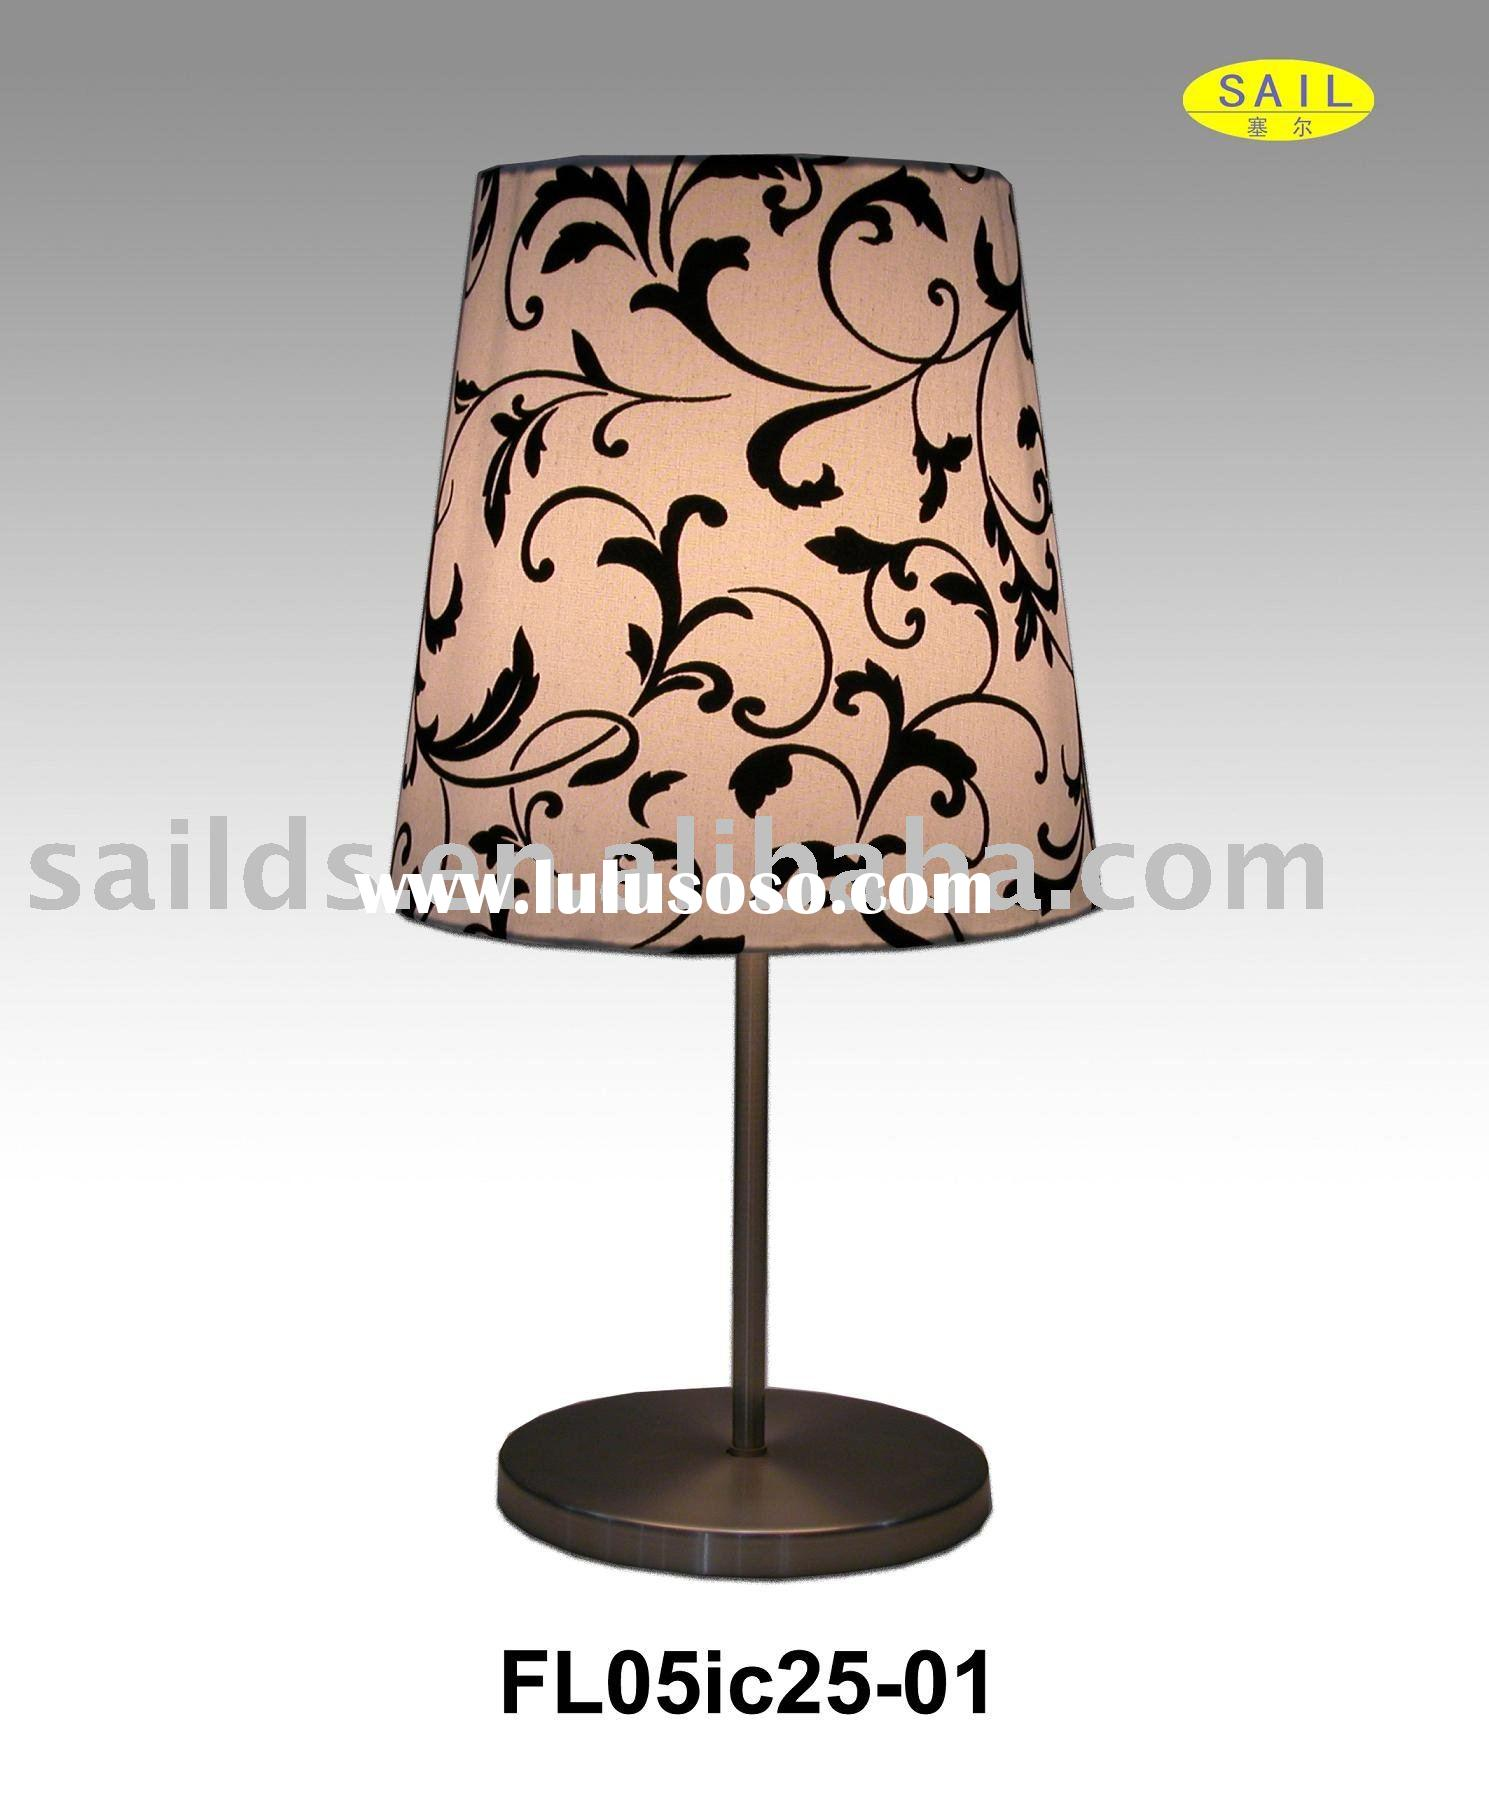 Table lamp for drawing - Table Lamp Shades